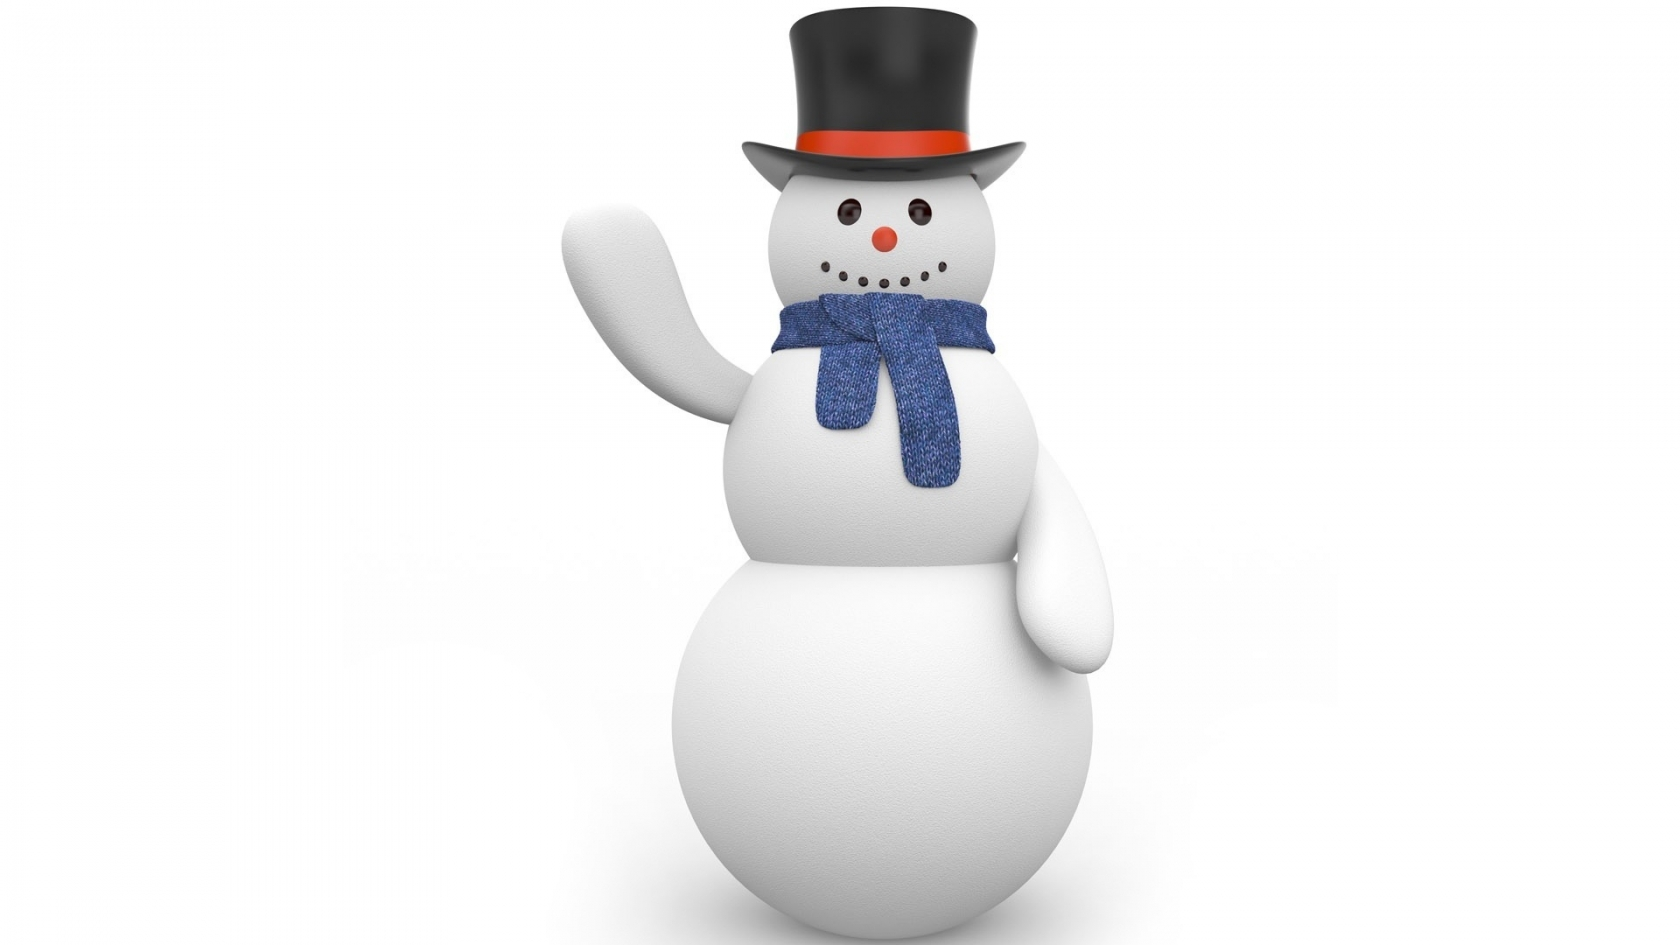 Merry Christmas Snowmen for 1680 x 945 HDTV resolution